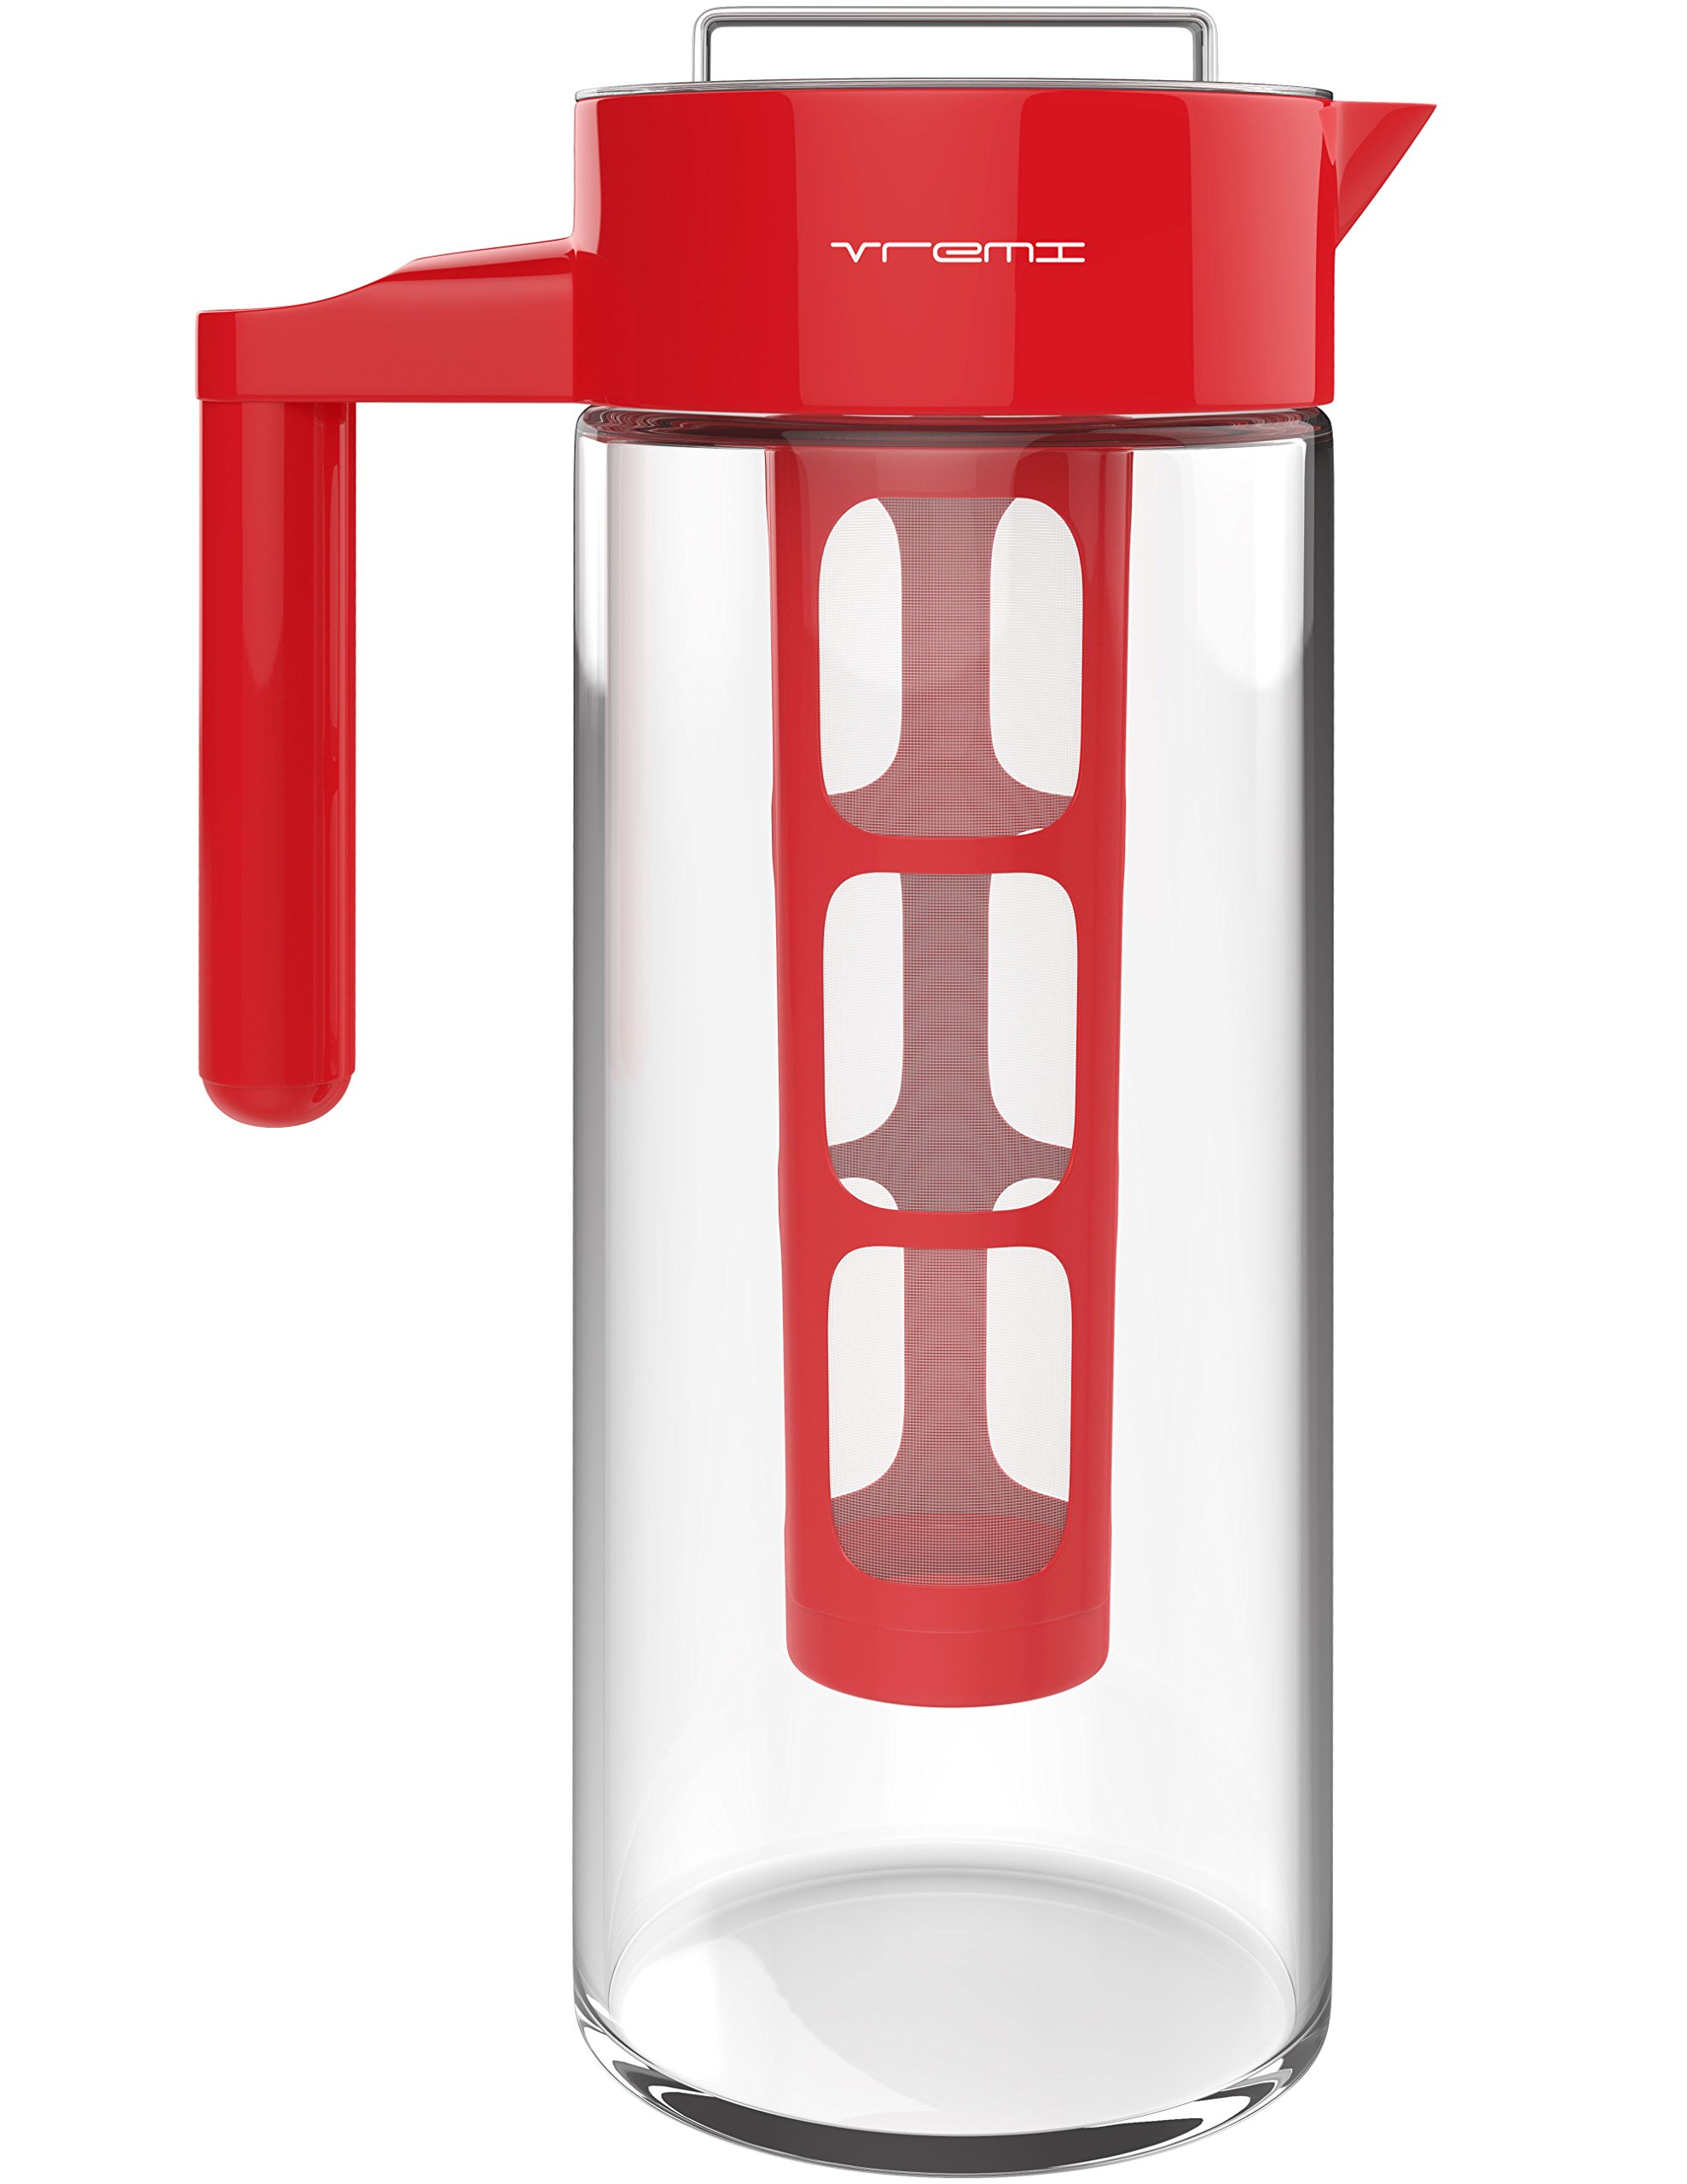 Vremi Cold Brew Iced Coffee Maker and Tea Infuser - 32 Ounce 1 Quart Glass Carafe Pitcher Airtight Lid and Spout - BPA Free Reusable Mesh Filter for Ground Coffee Loose Tea - Dishwasher Safe - Red by Vremi